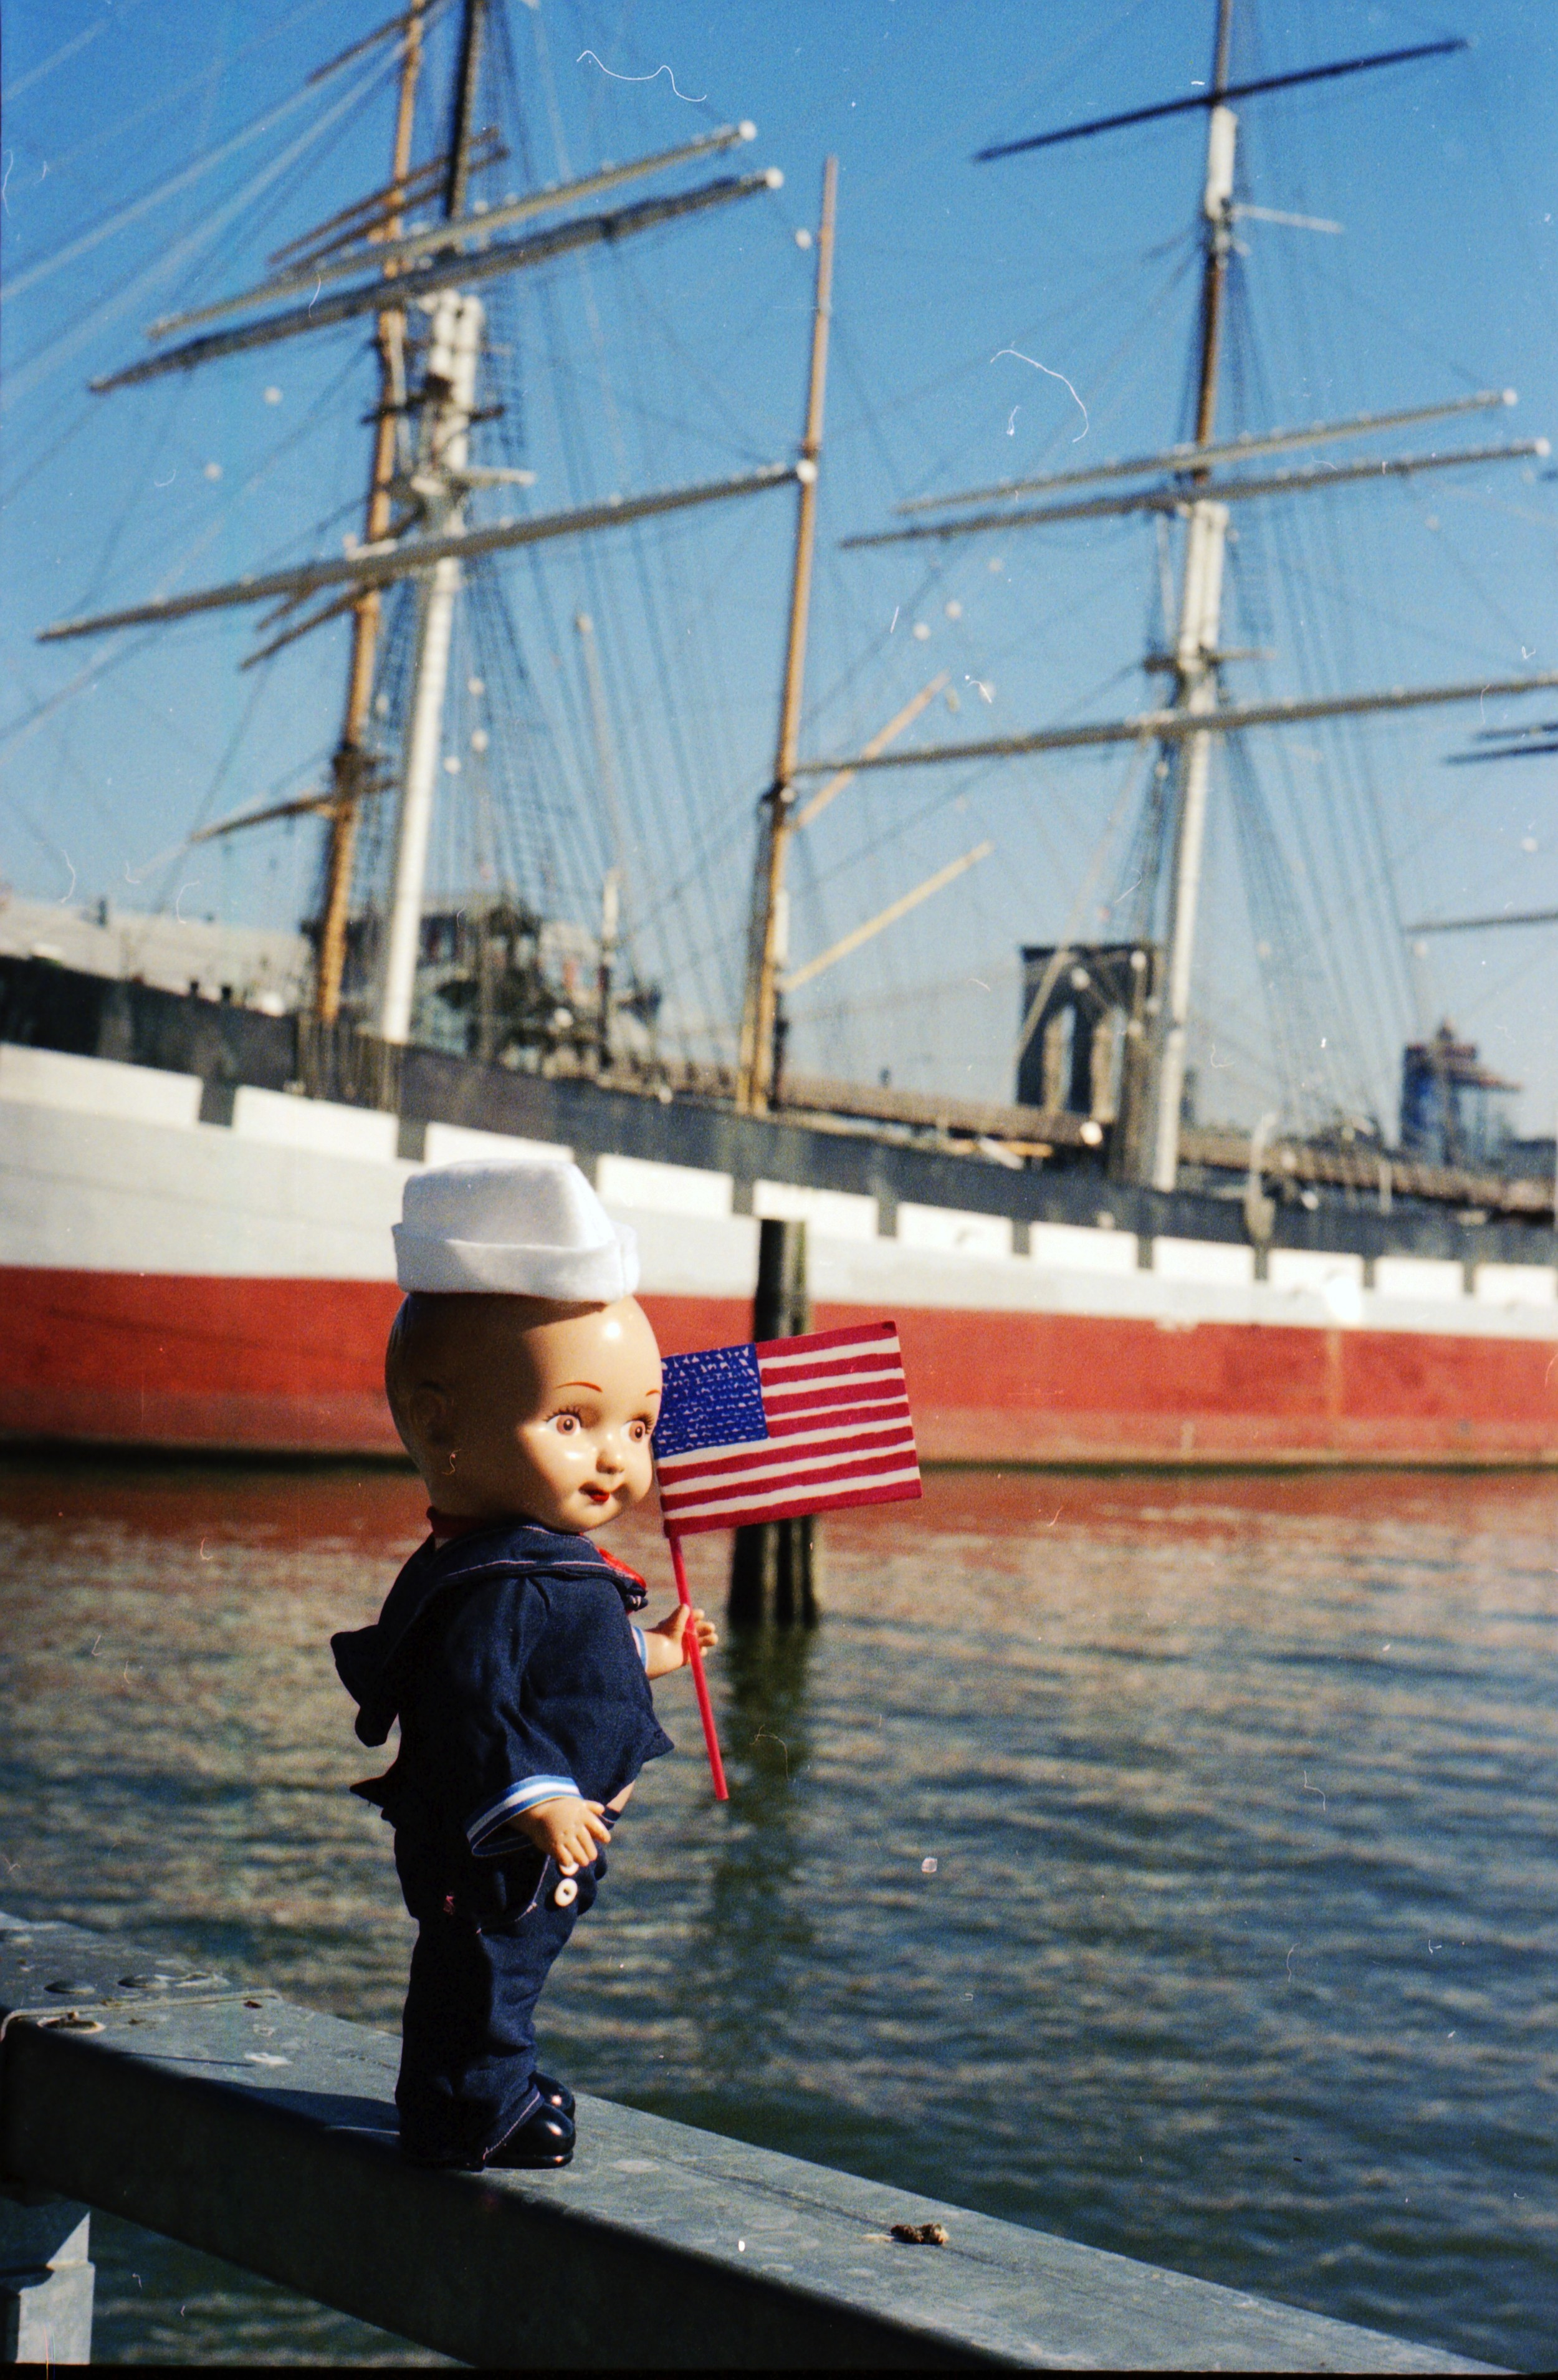 Buddy Ian at the South Street Seaport